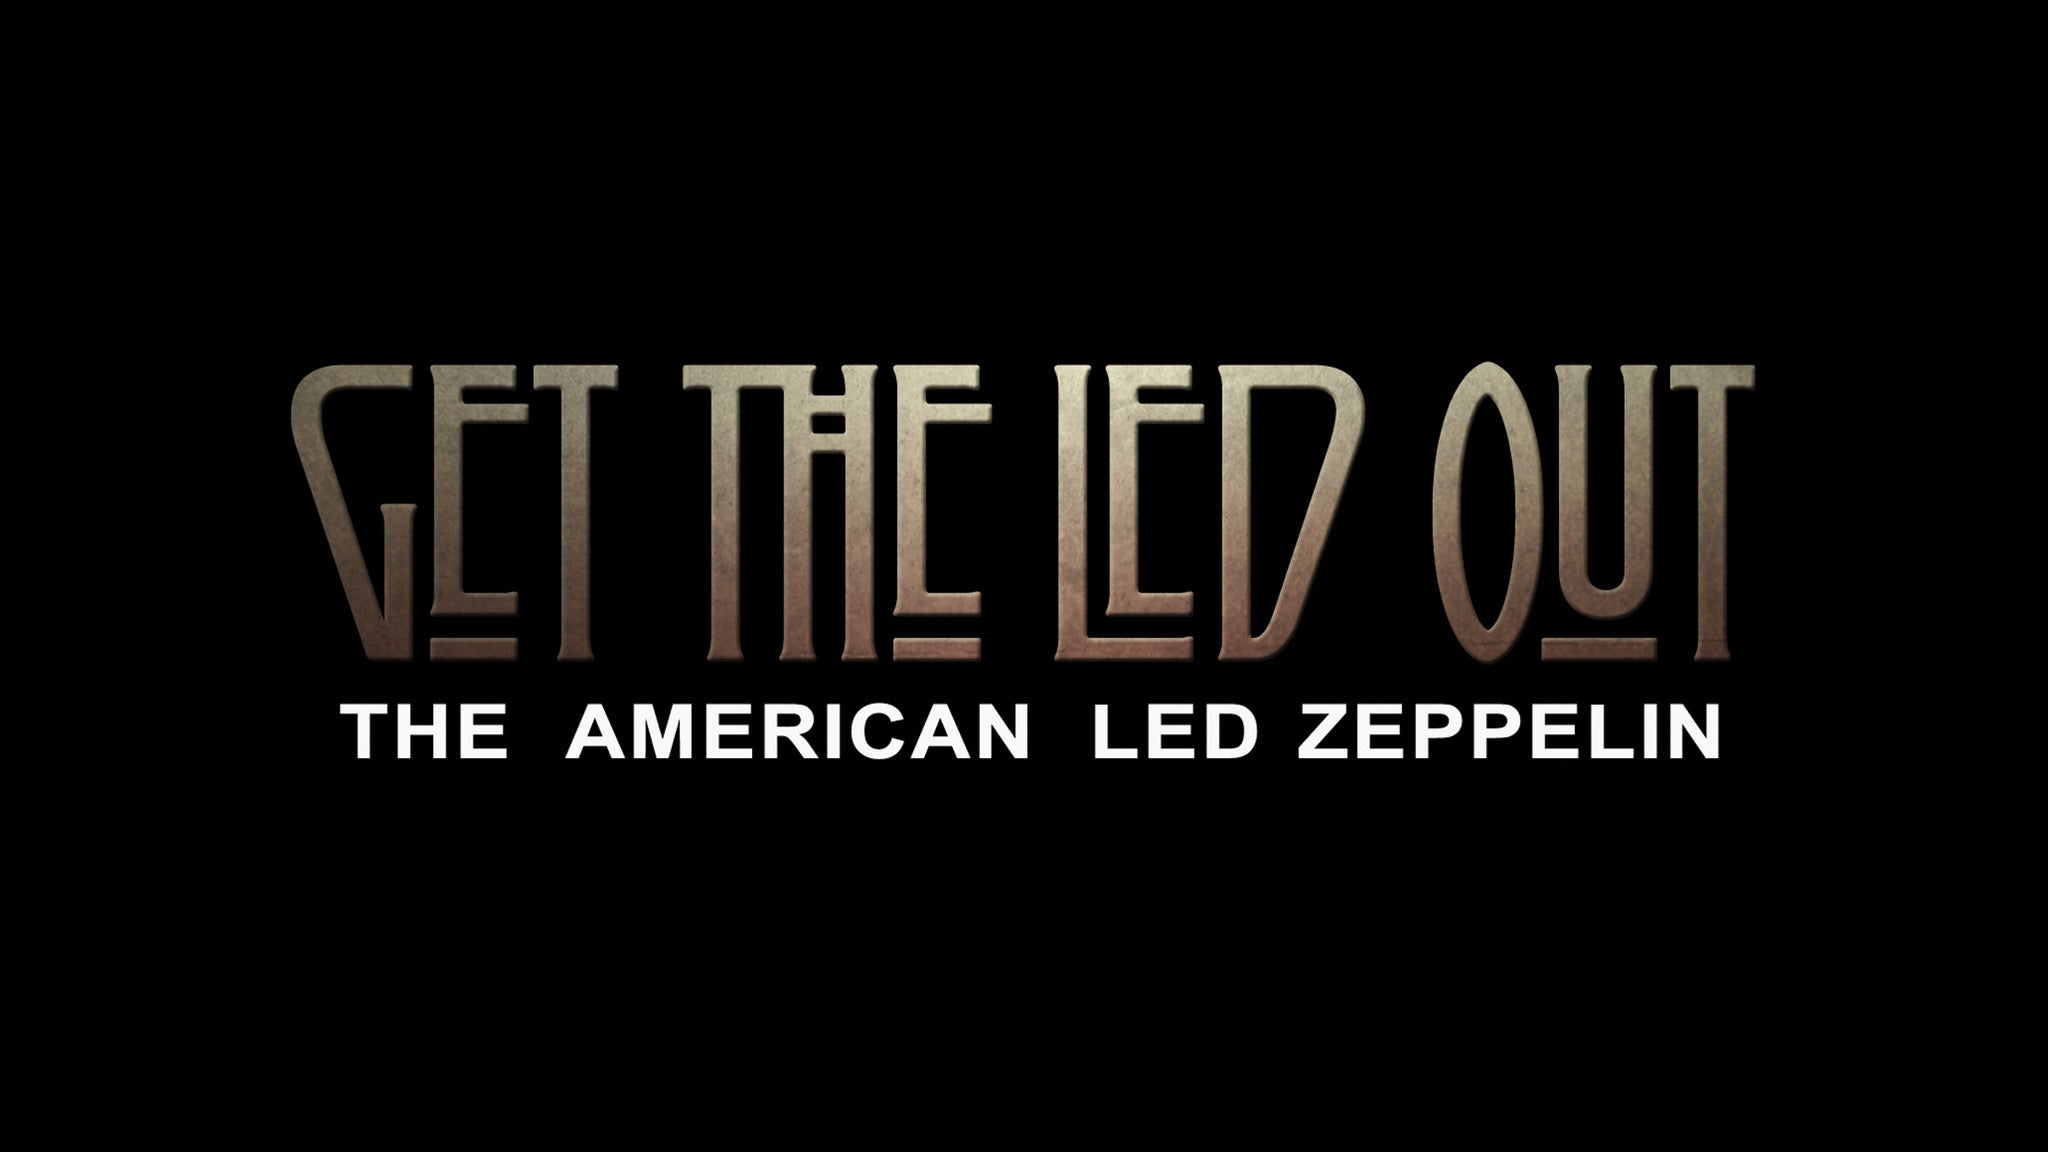 Get the Led Out at Raising Cane's River Center Arena